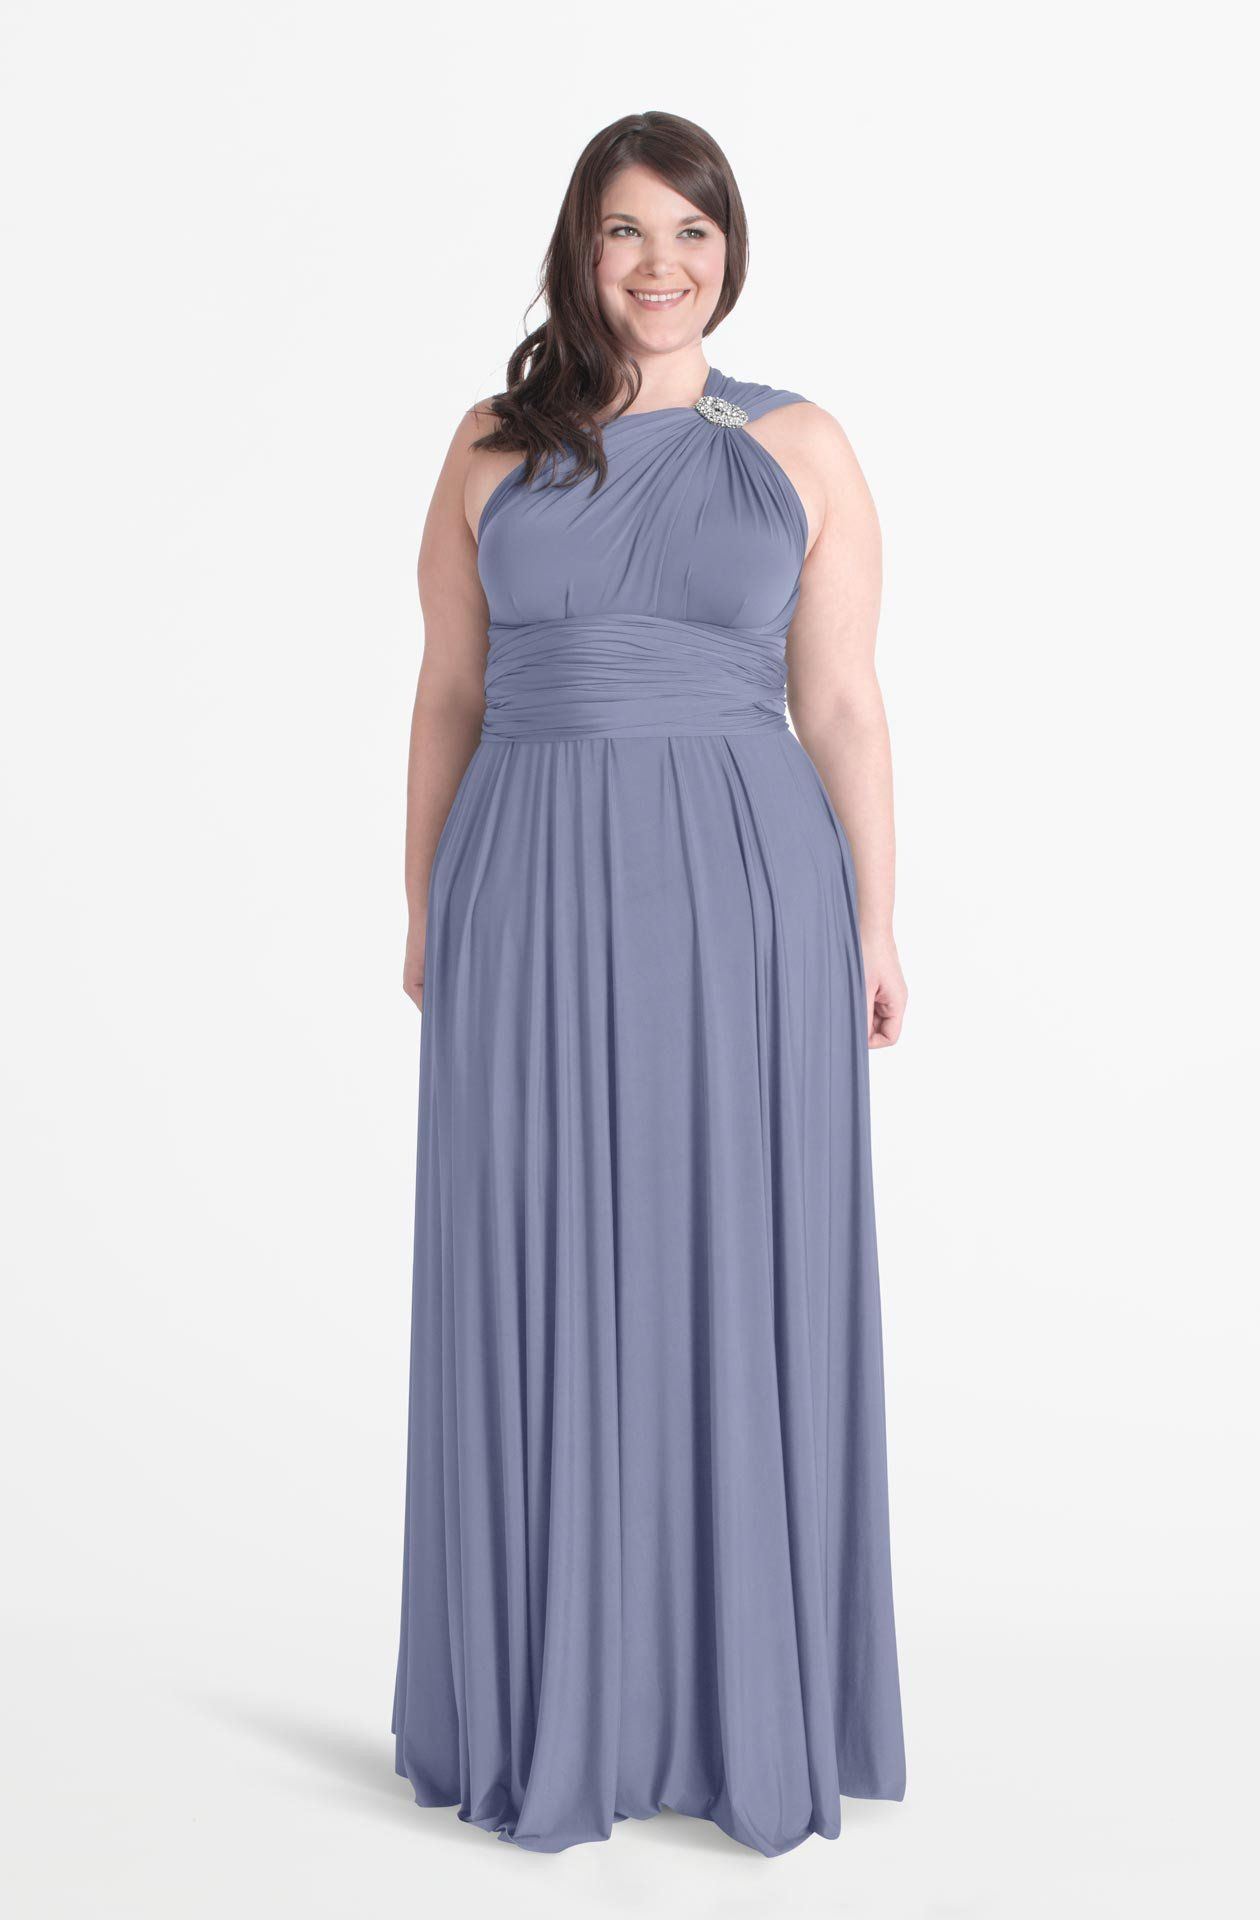 1919e8464fa Dusty Blue - Henkaa Convertible Style Dress - Best-selling convertible dress  in maxi length - weddings special events